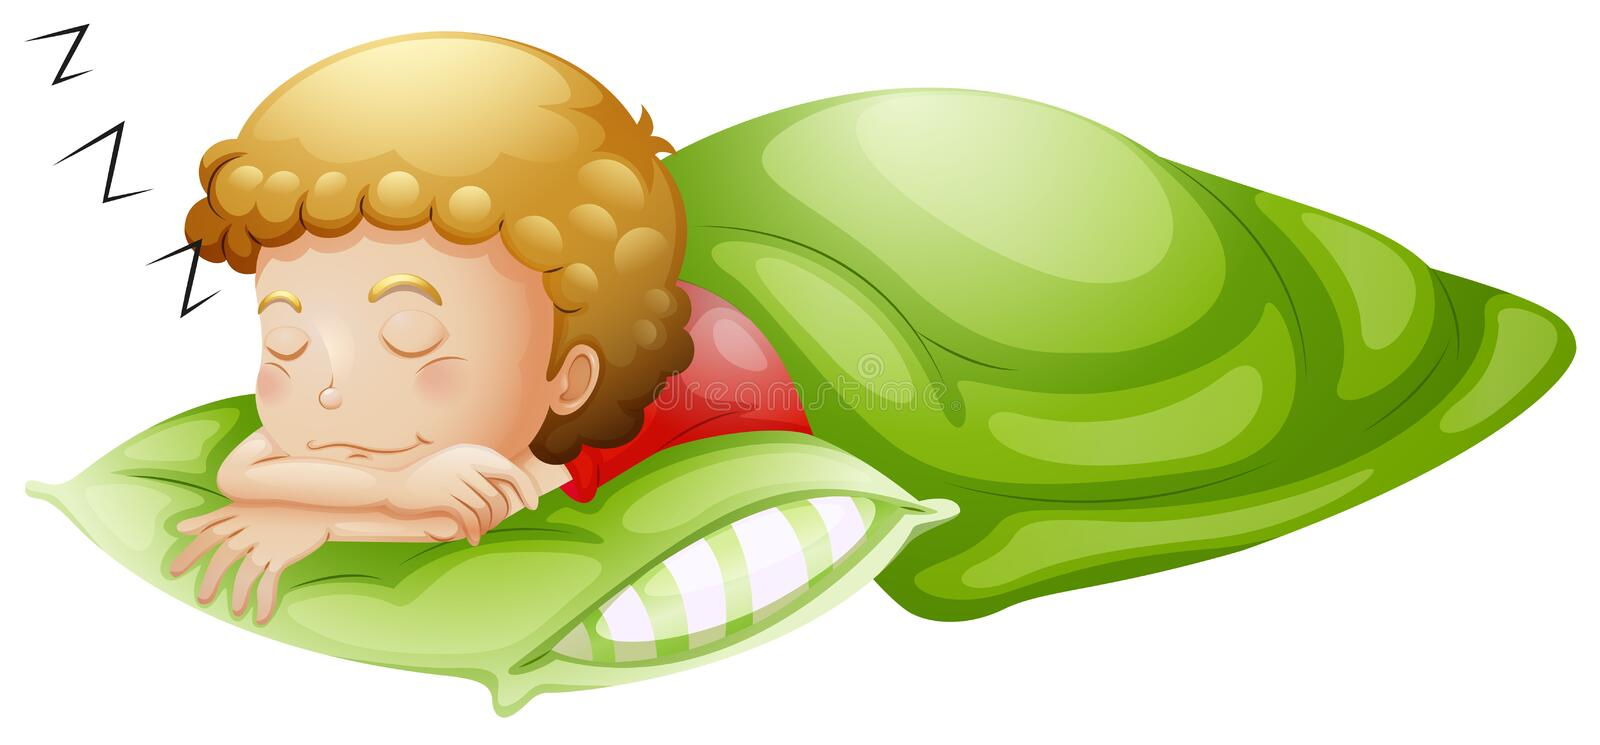 A little boy sleeping soundly stock illustration